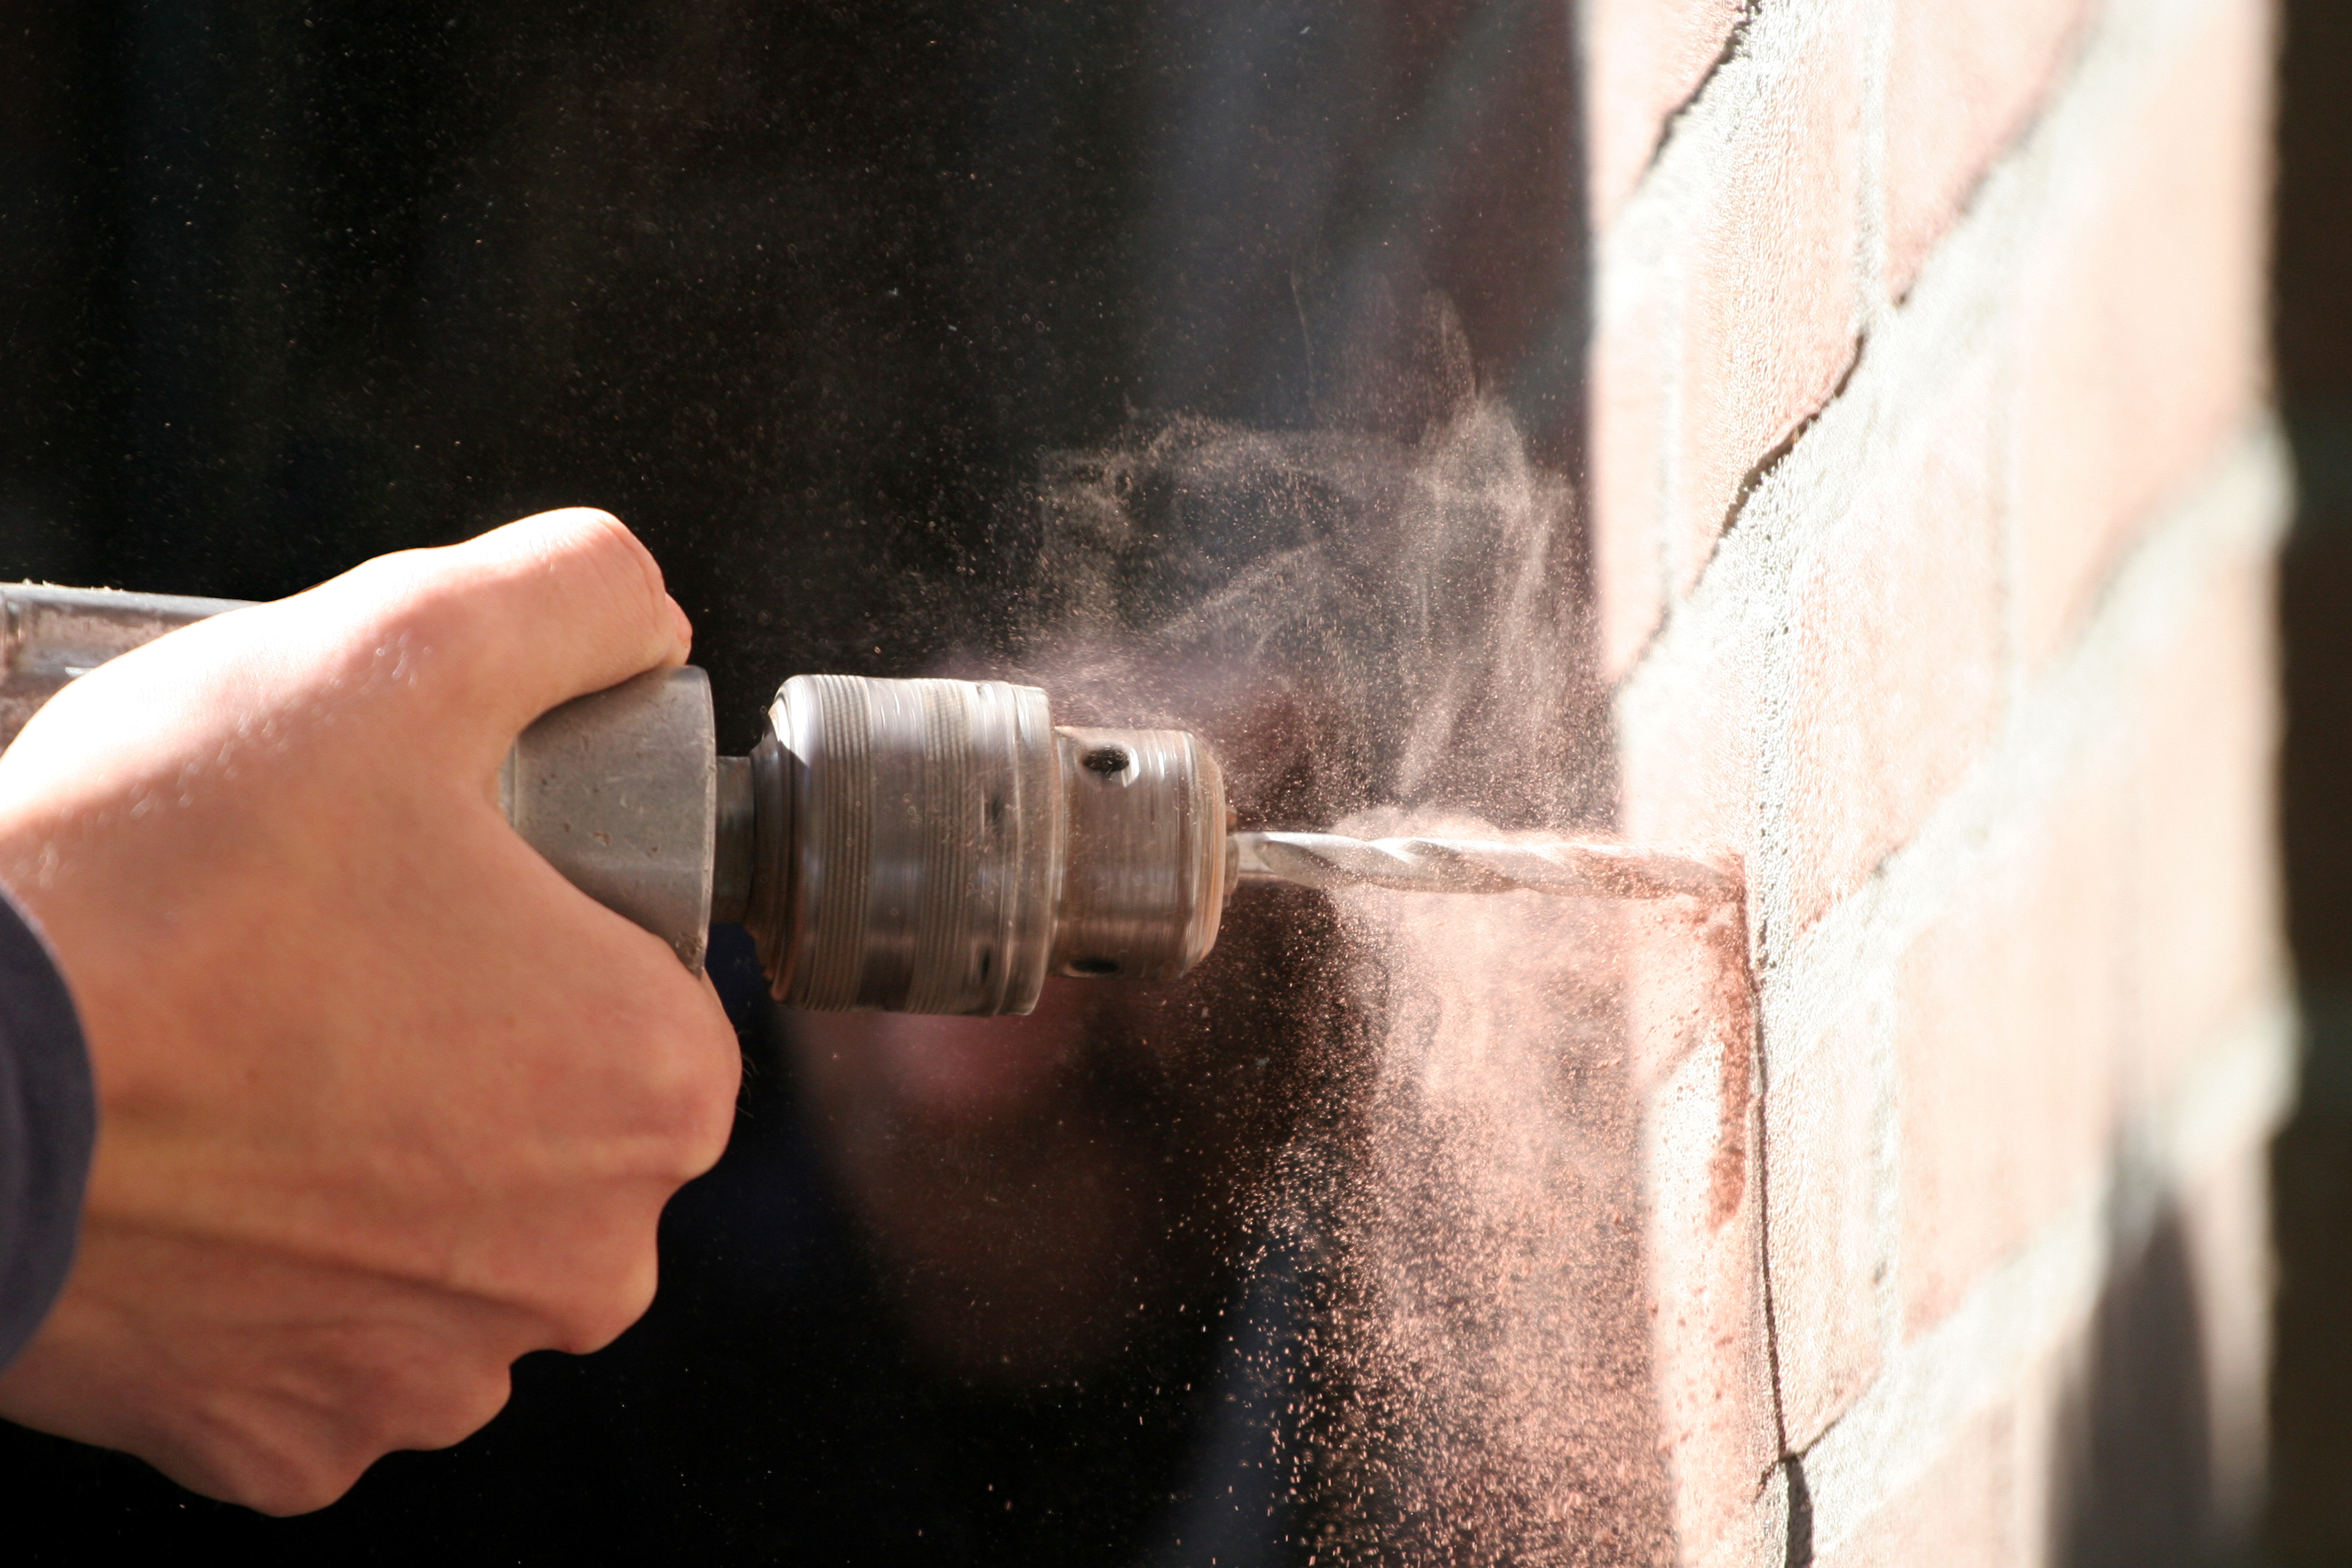 Take care when doing DIY such as drilling or nailing thing